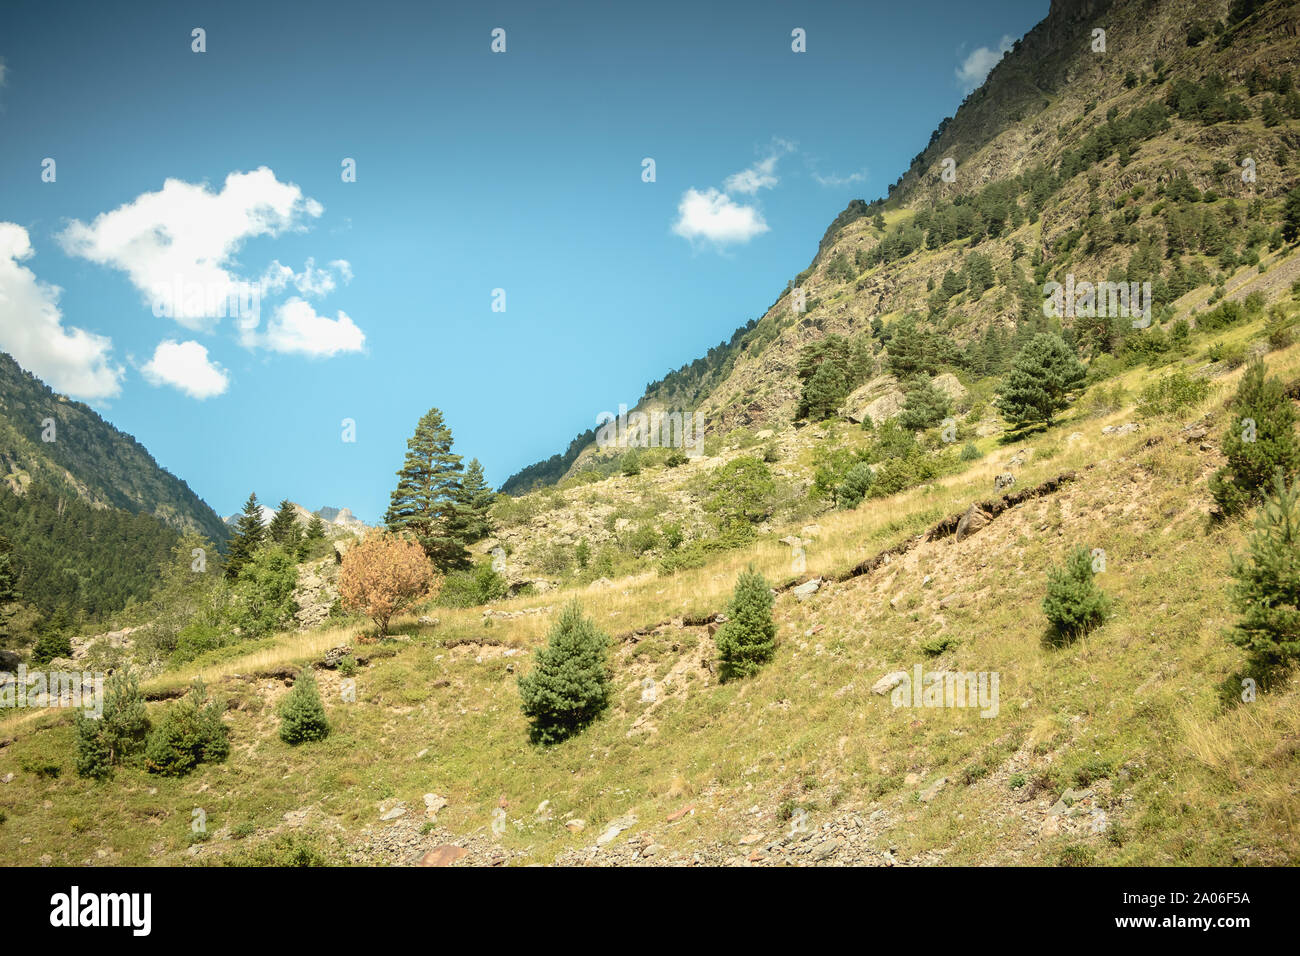 hiking path with trees and vegetation in the Pyrenees mountains in France Stock Photo